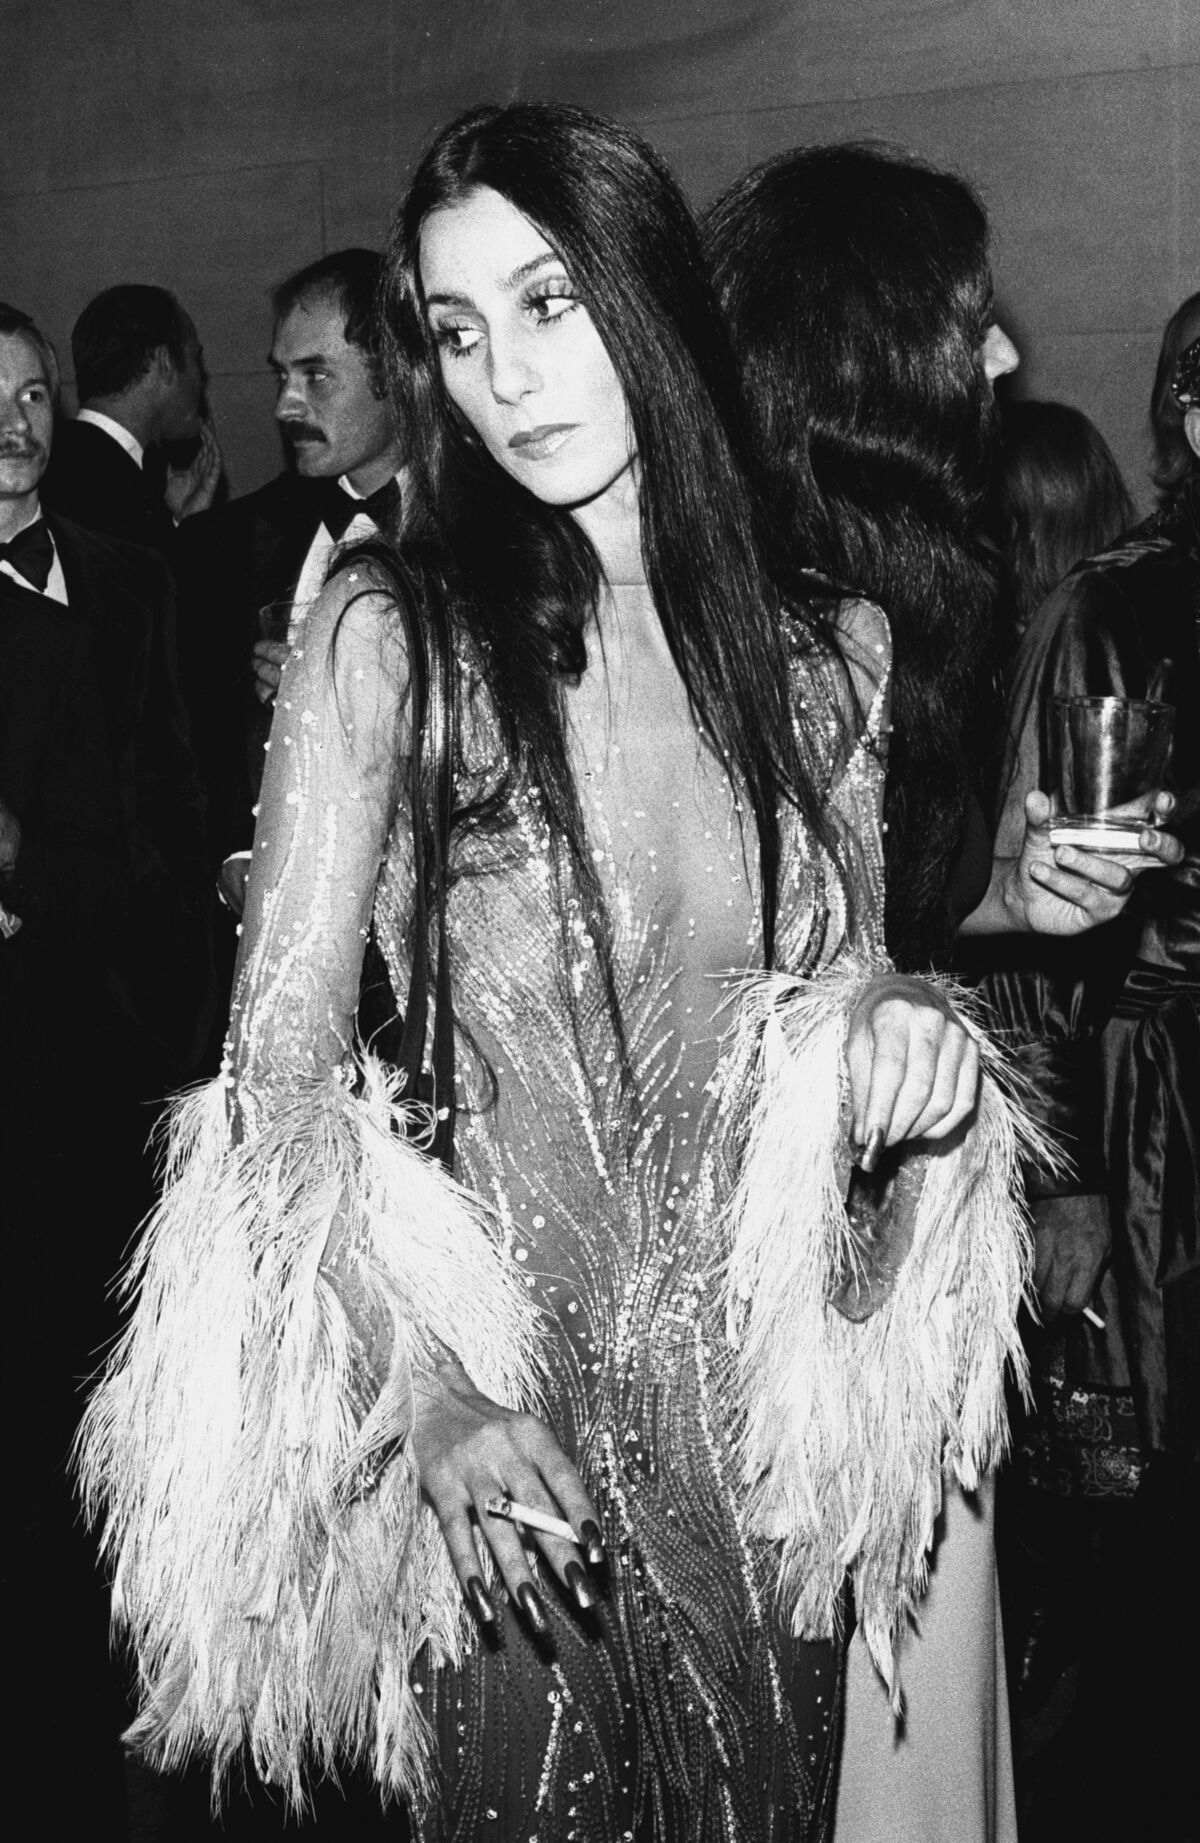 """Cher at the """"Romantic and Glamorous Hollywood Design"""" Costume Institute Benefit Gala at the Metropolitan Museum of Art, New York, 1974. Photo by Ron Galella/WireImage."""